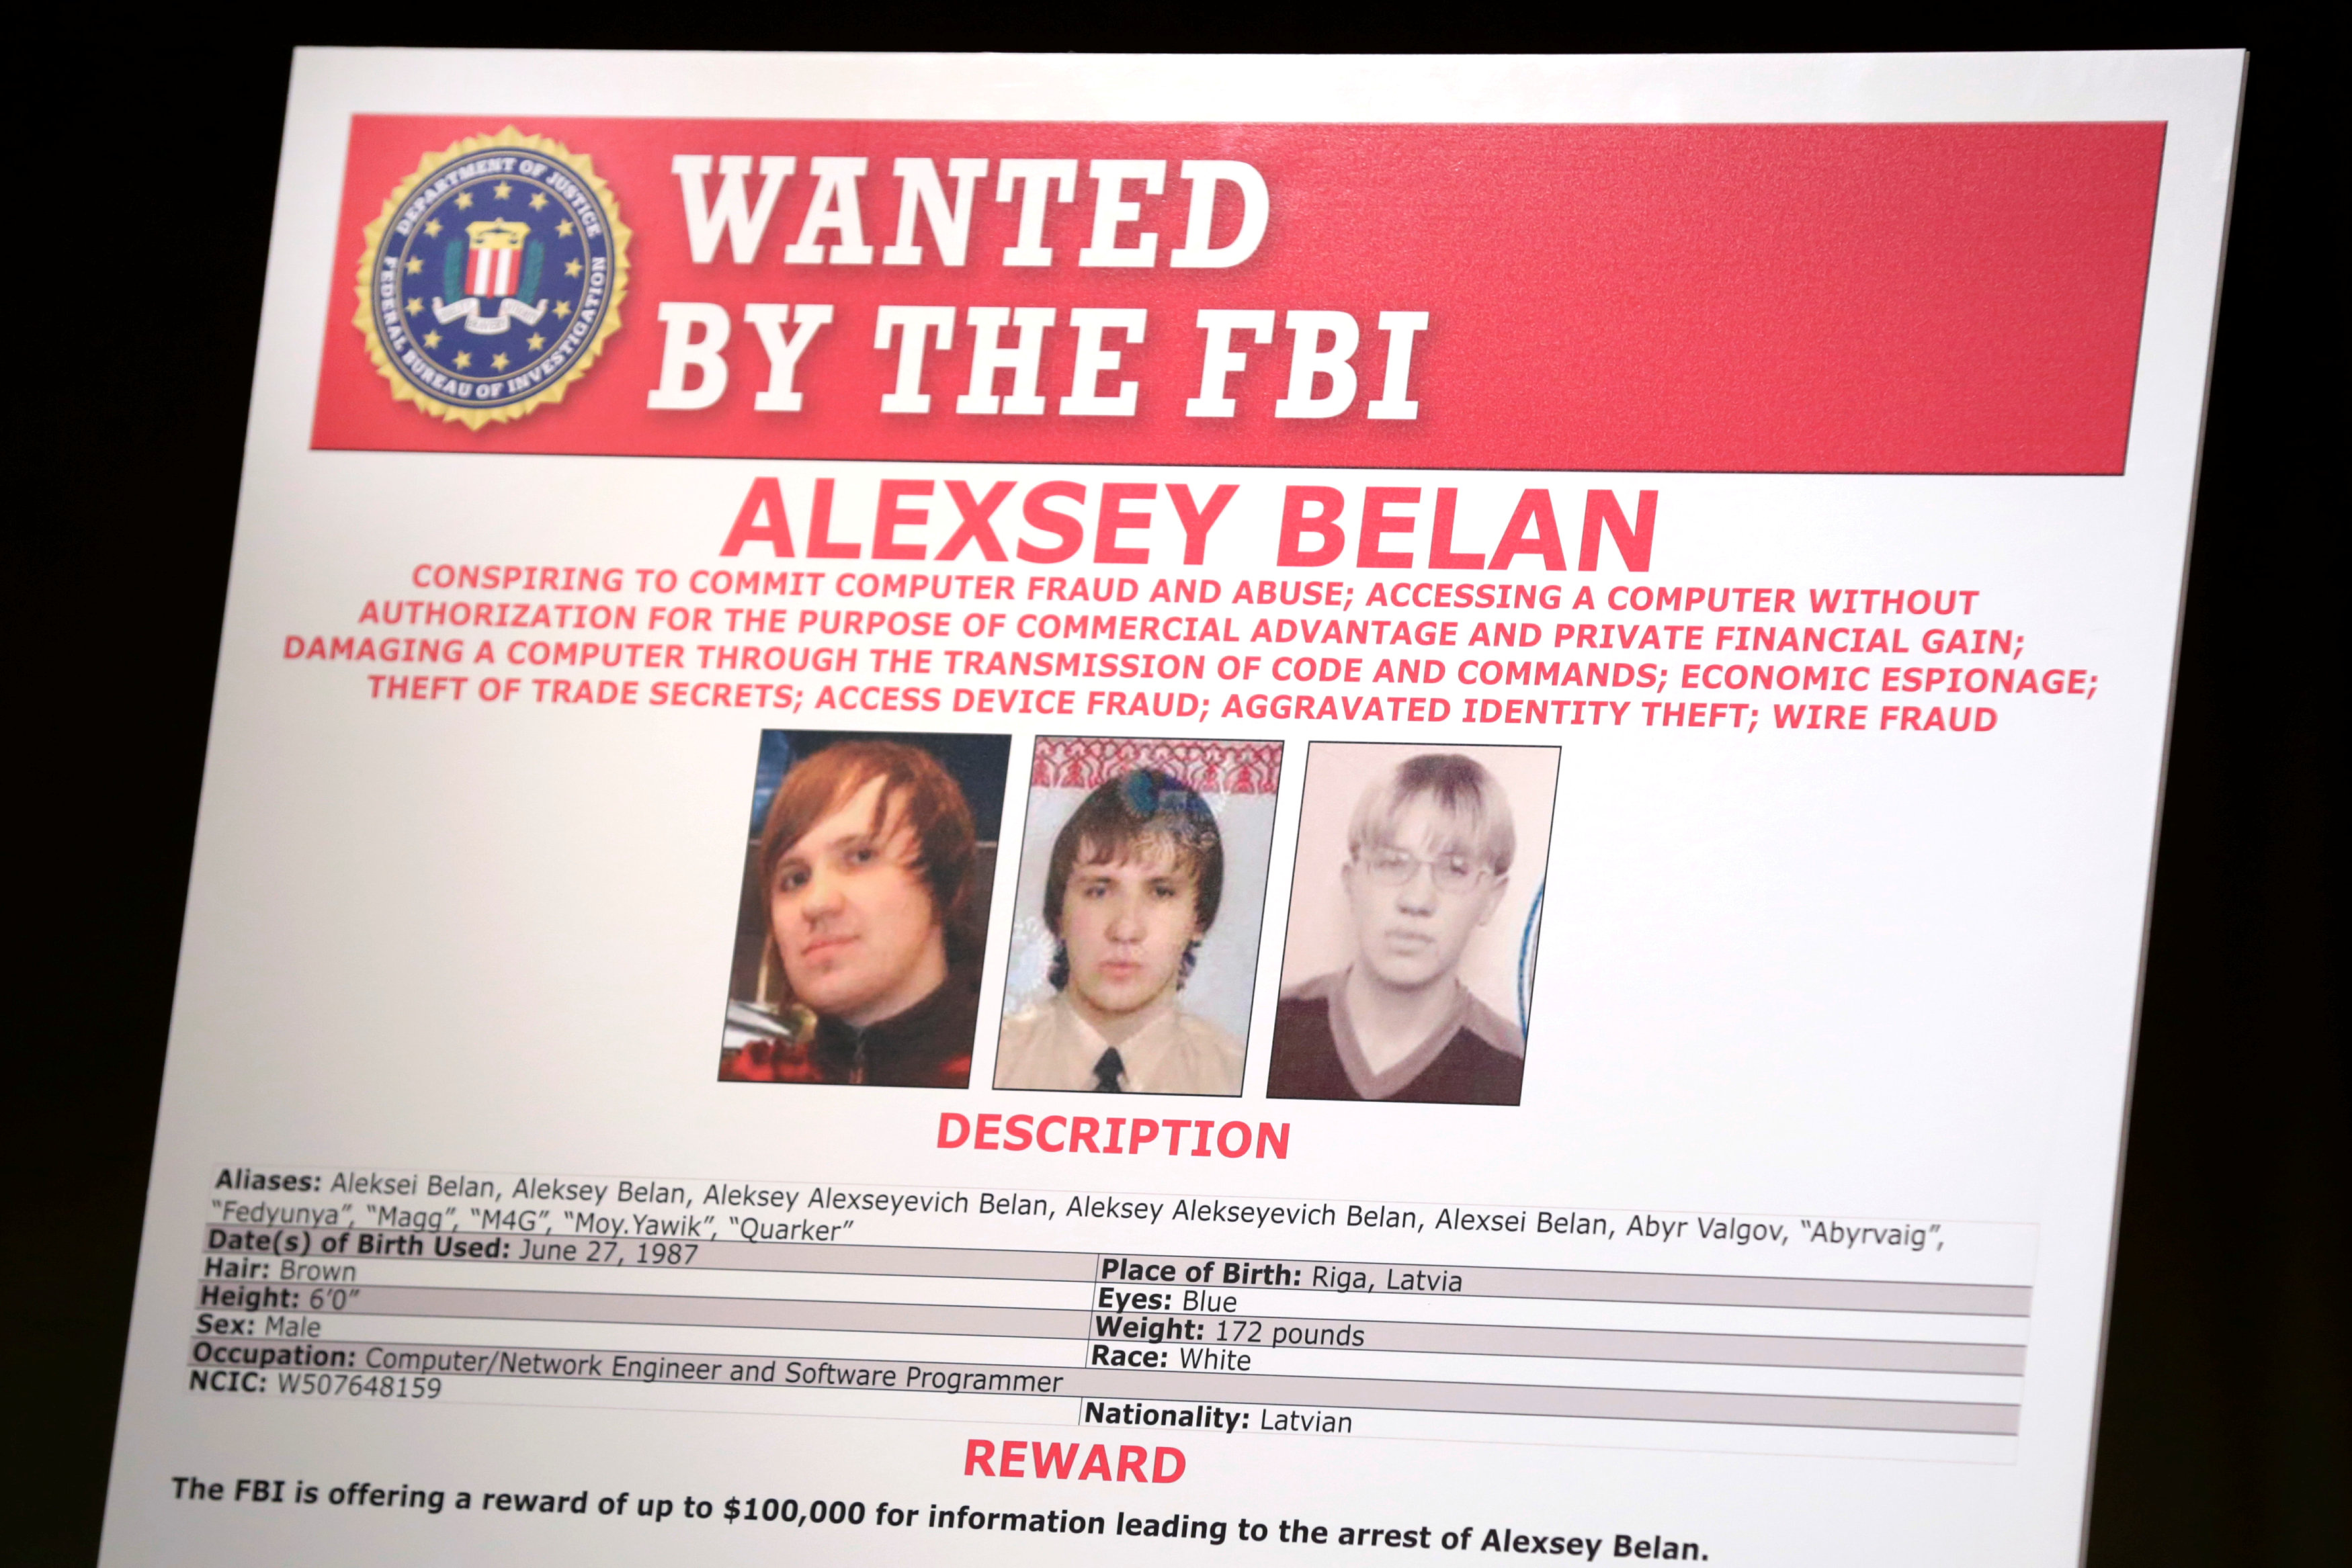 A poster of suspected Russian hackers is seen before FBI National Security Division and the U.S. Attorney's Office for the Northern District of California joint news conference at the Justice Department in Washington, U.S. on March 15, 2017. (REUTERS/Yuri Gripas)